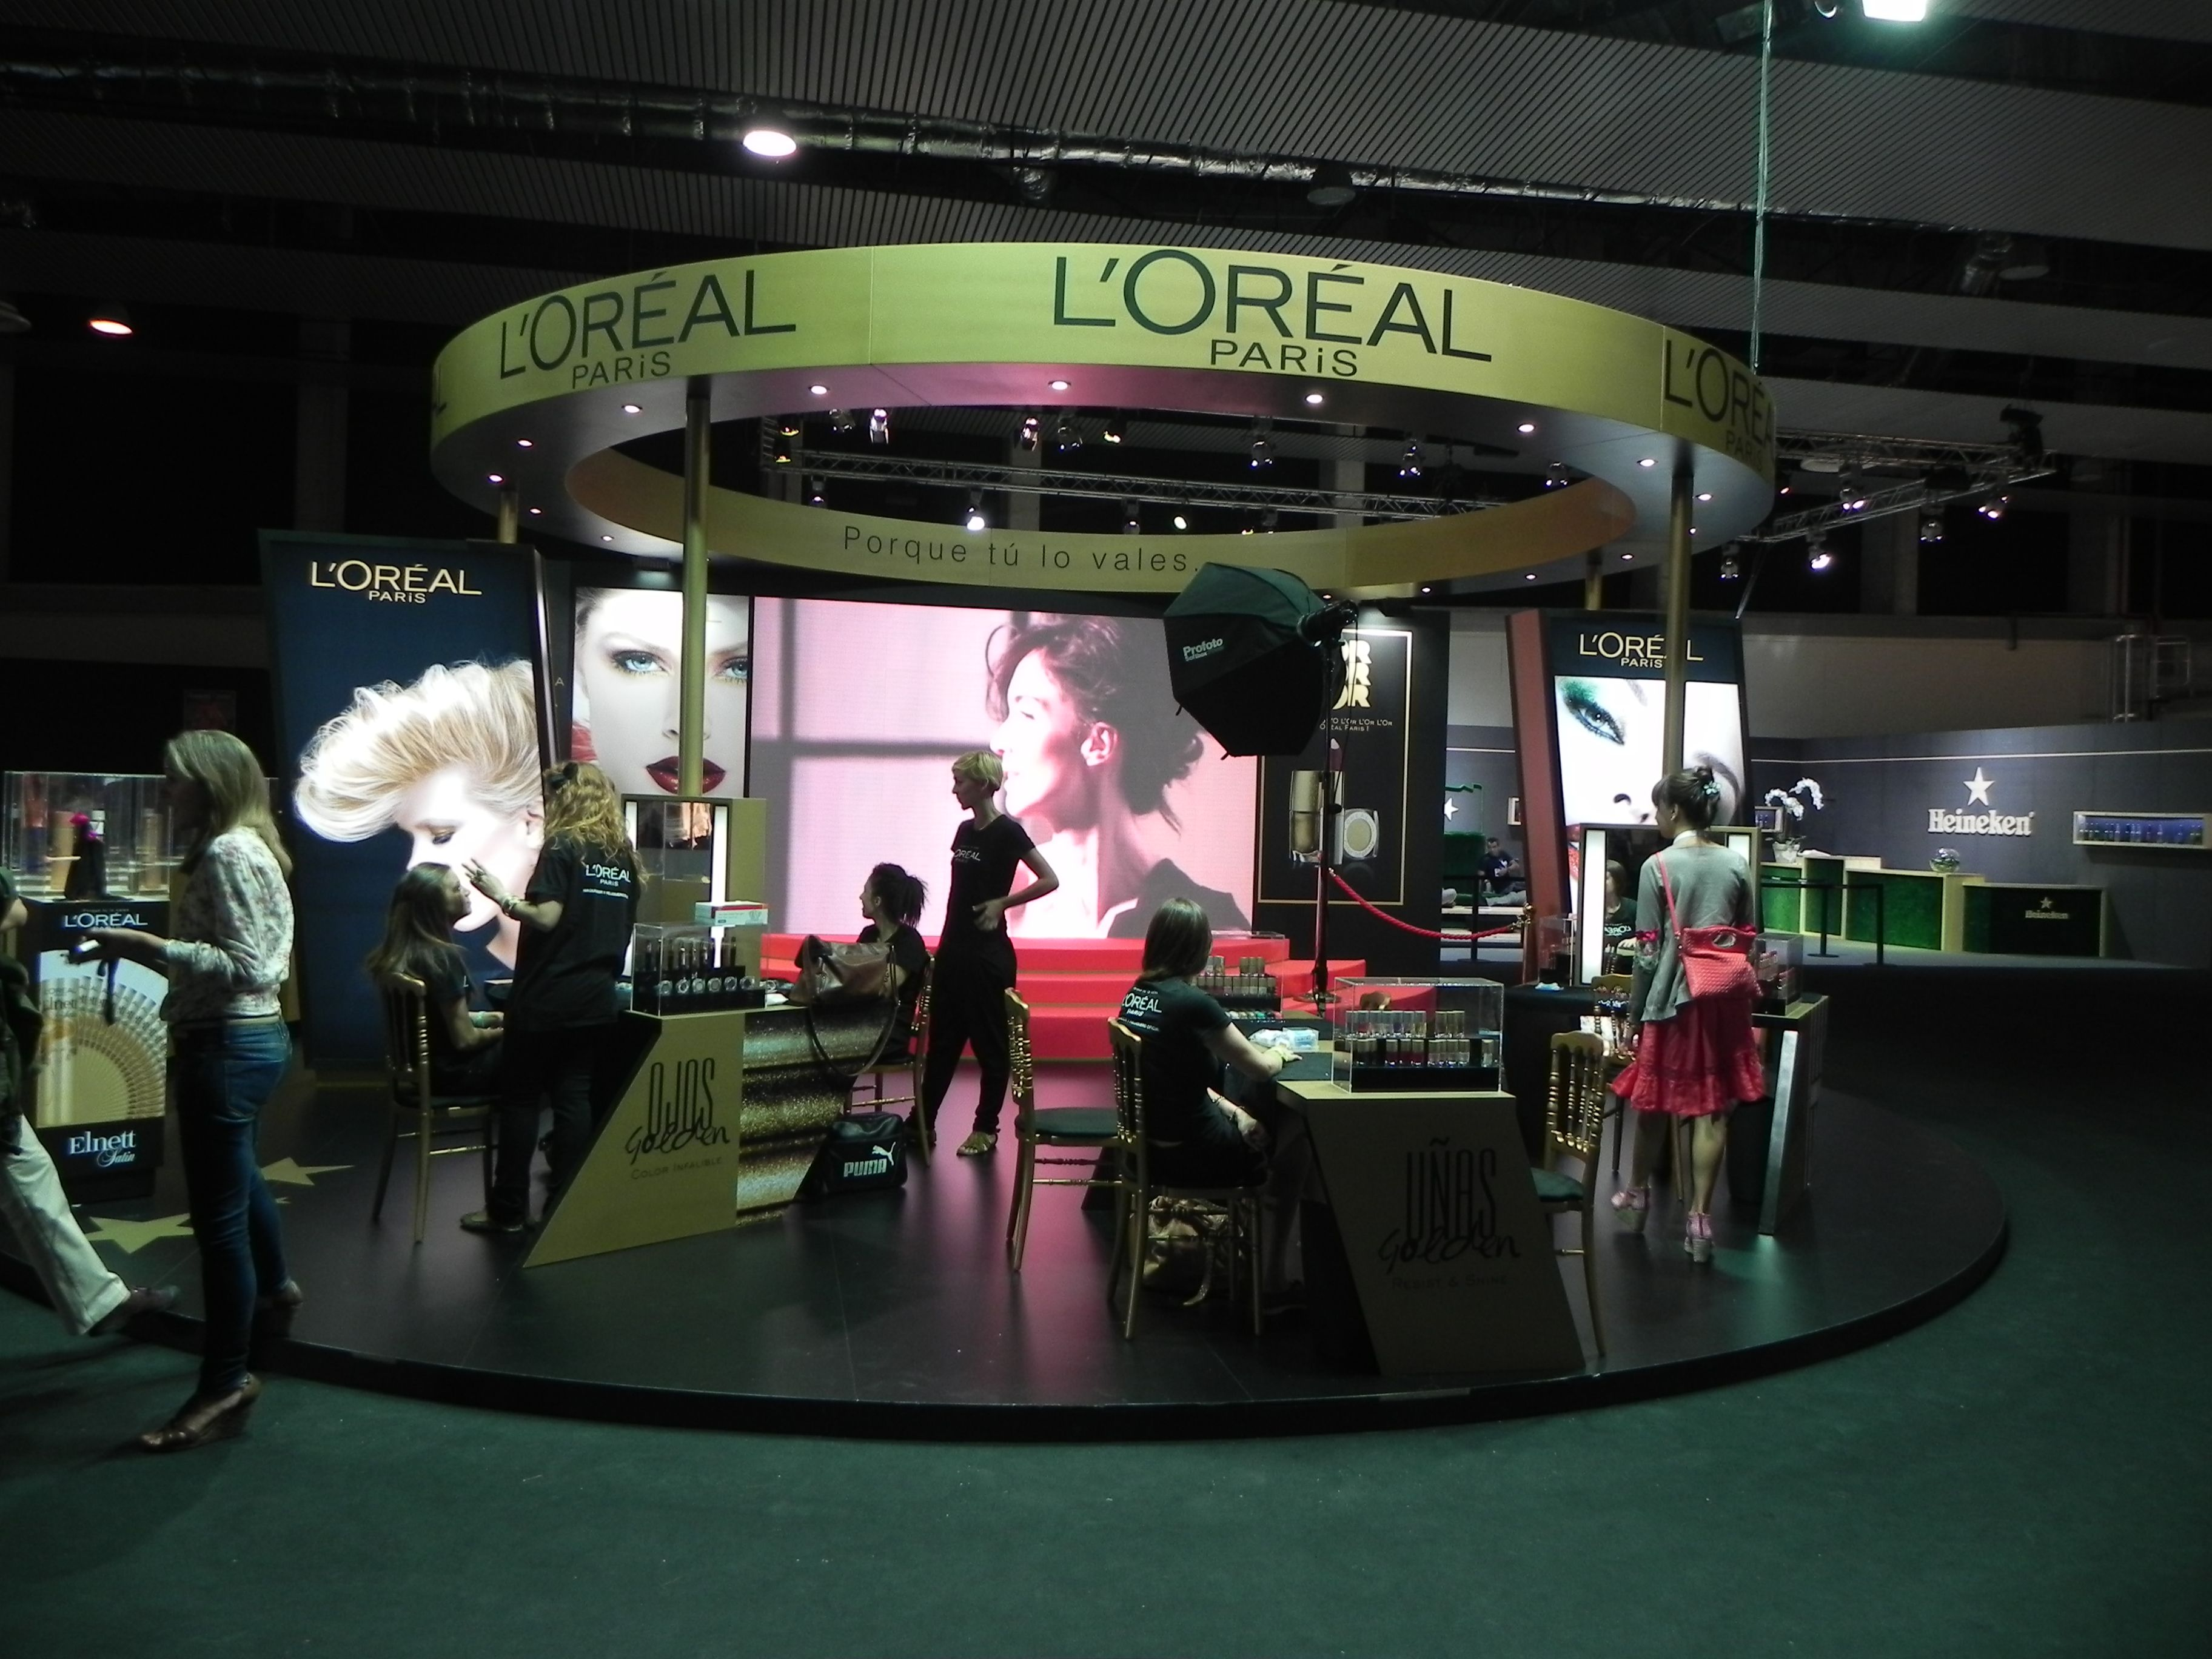 Decoraciones Expo Stands S L : Full equipe decoraciones s l